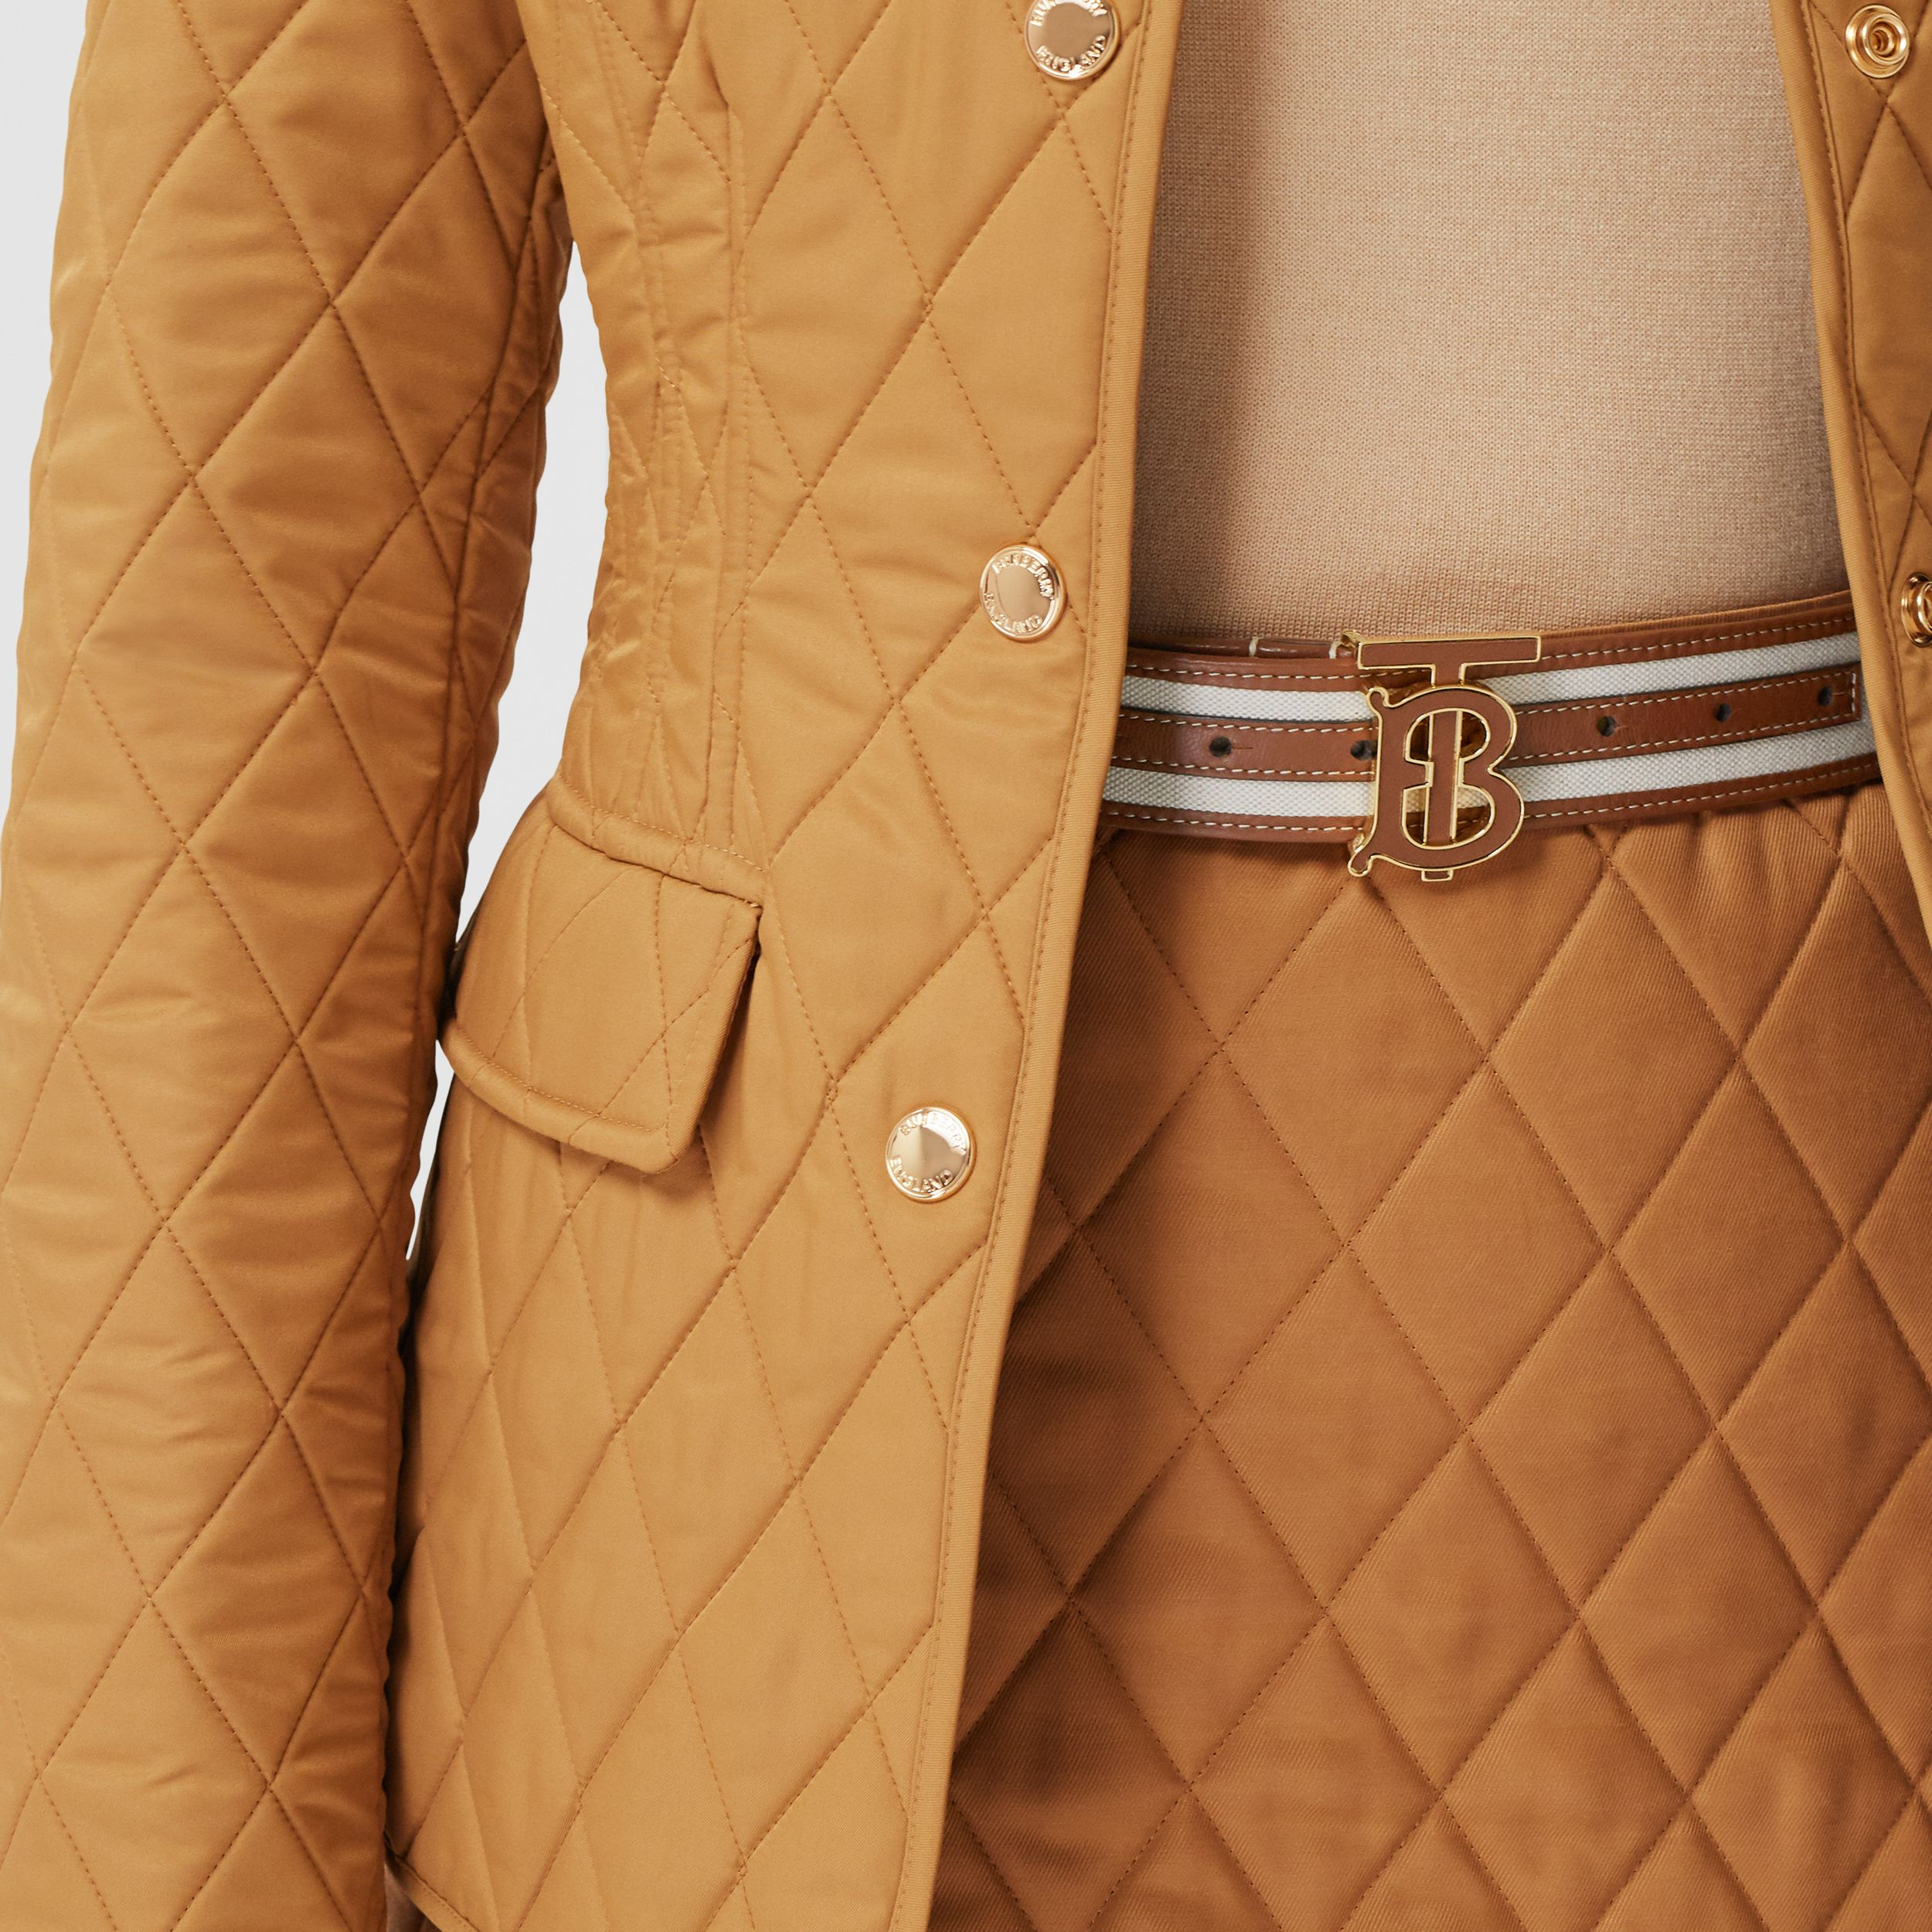 Monogram Motif Canvas and Leather Belt in Natural - Women | Burberry United Kingdom - 3